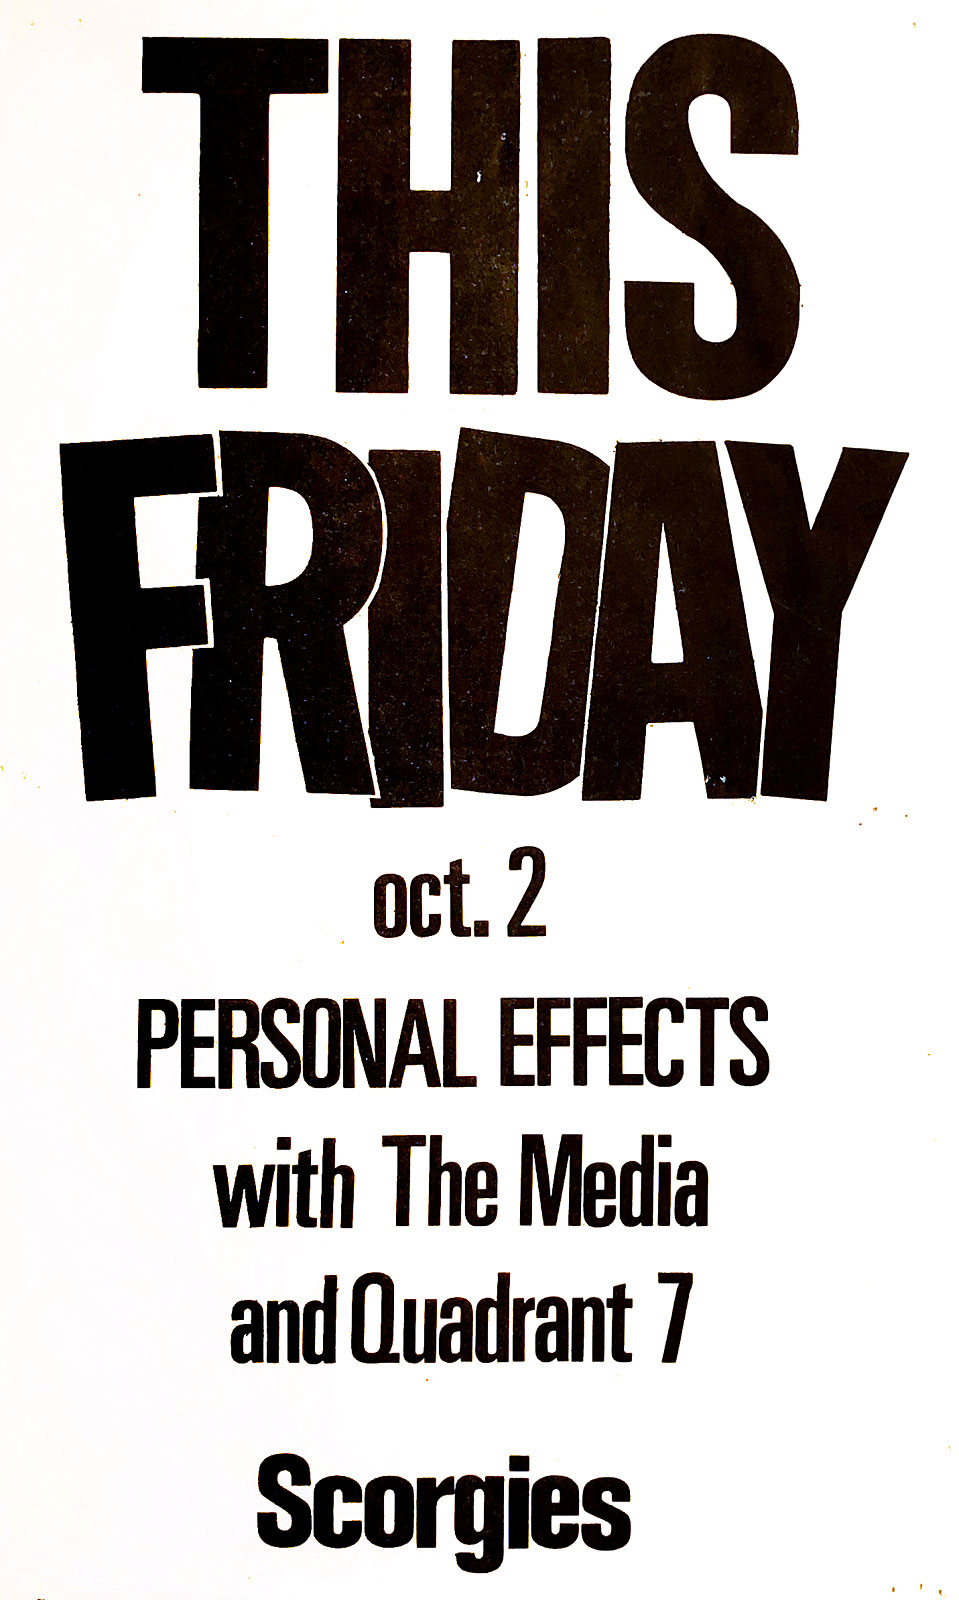 Poster for Personal Effects withThe Media and Quadrant 7 at Scorgie's in Rochester, New York on 10.02.1981